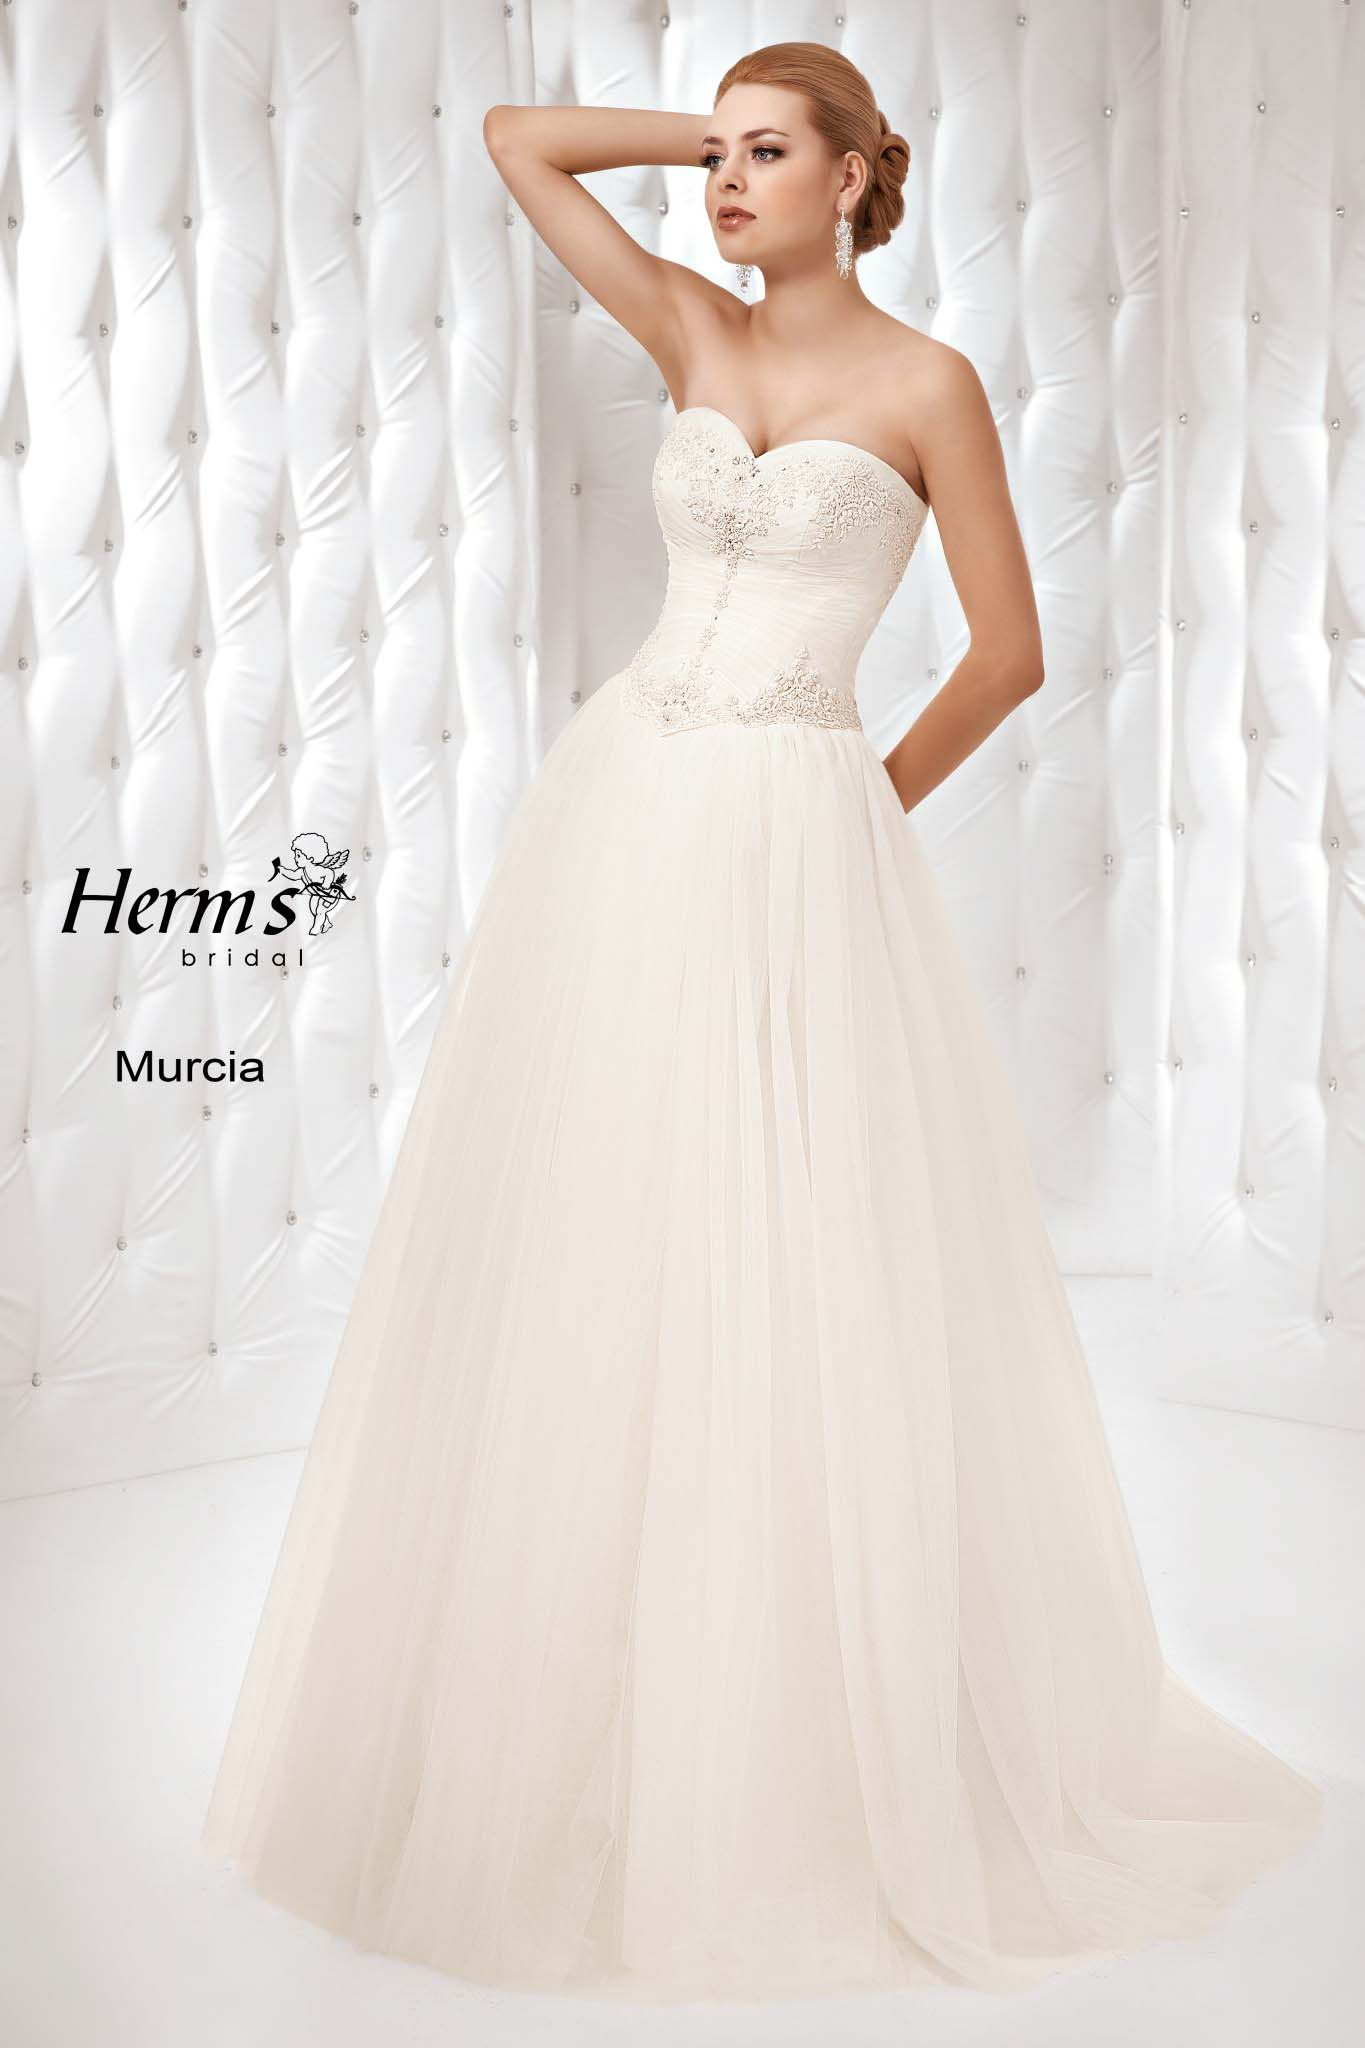 wedding dress Herm's Bridal Murcia